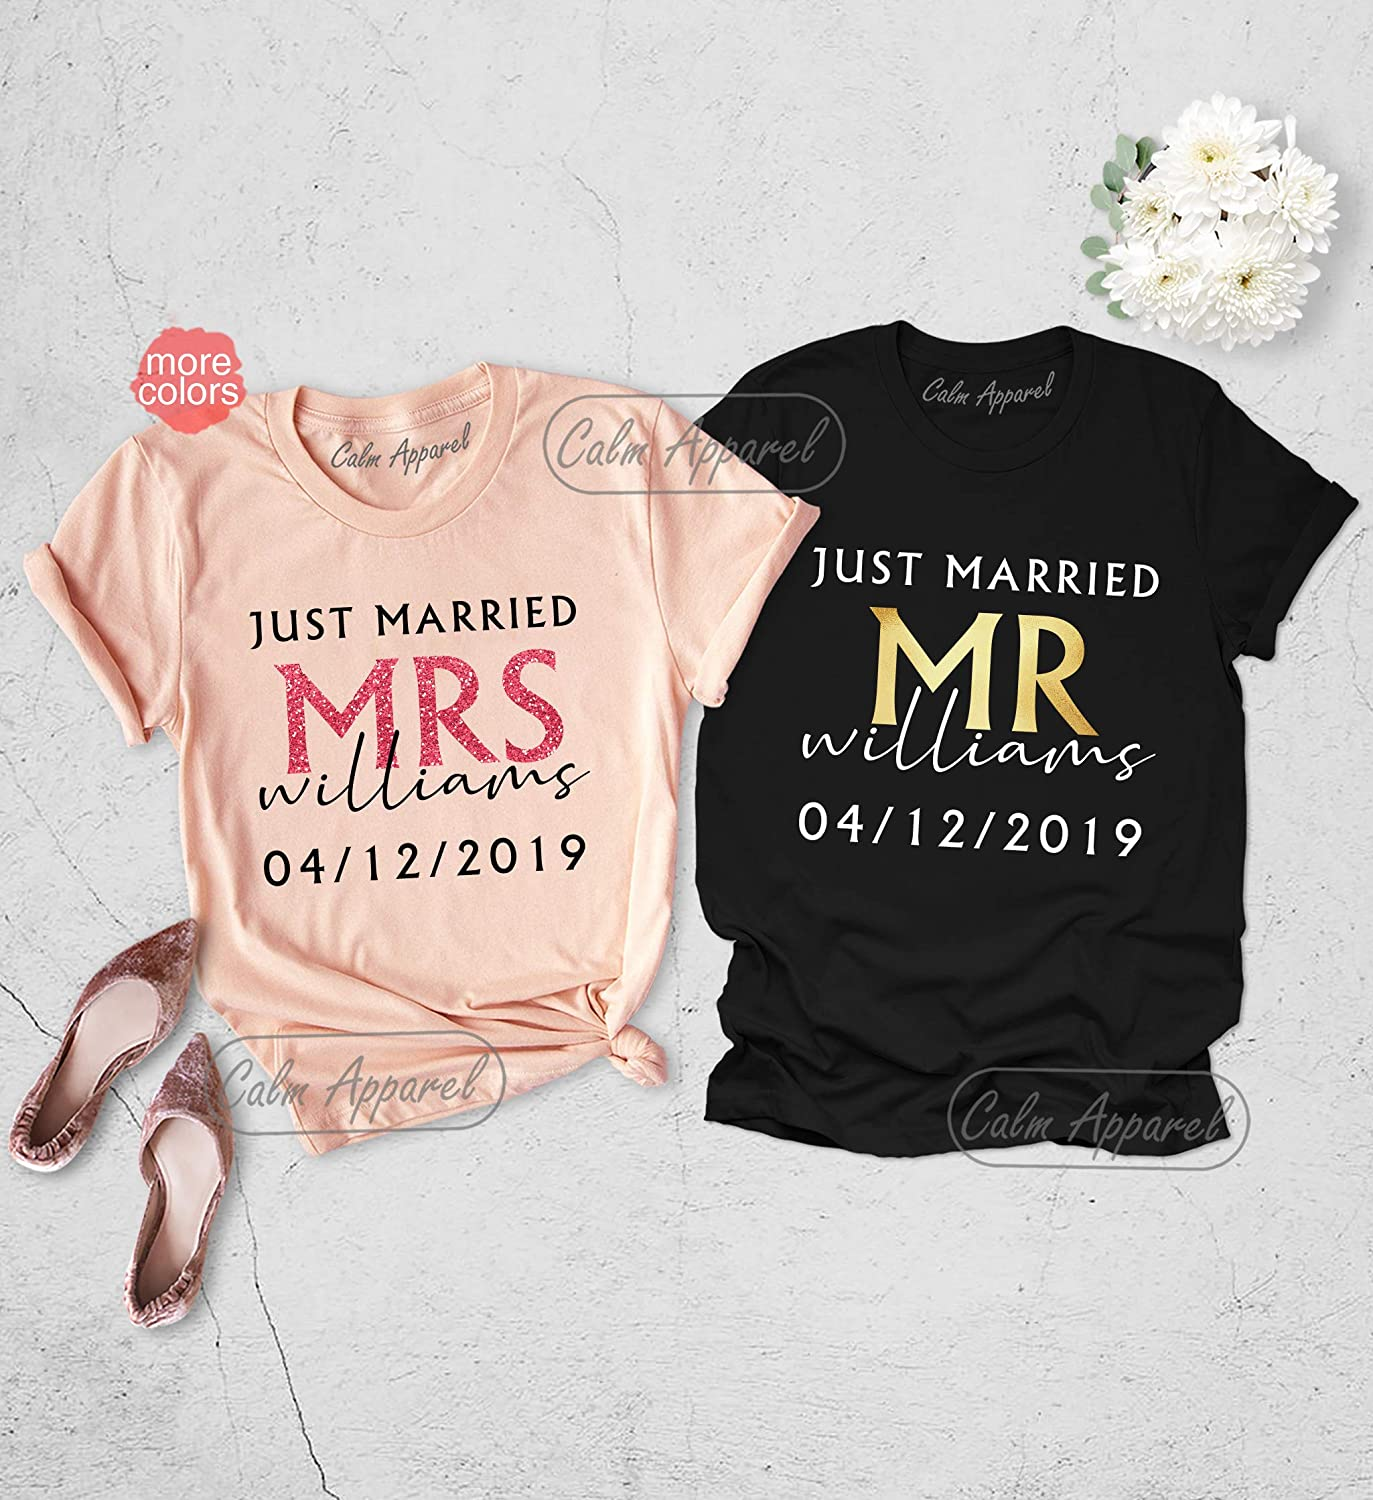 Just Married His and Her couple matching black T-shirts set with mouse ears